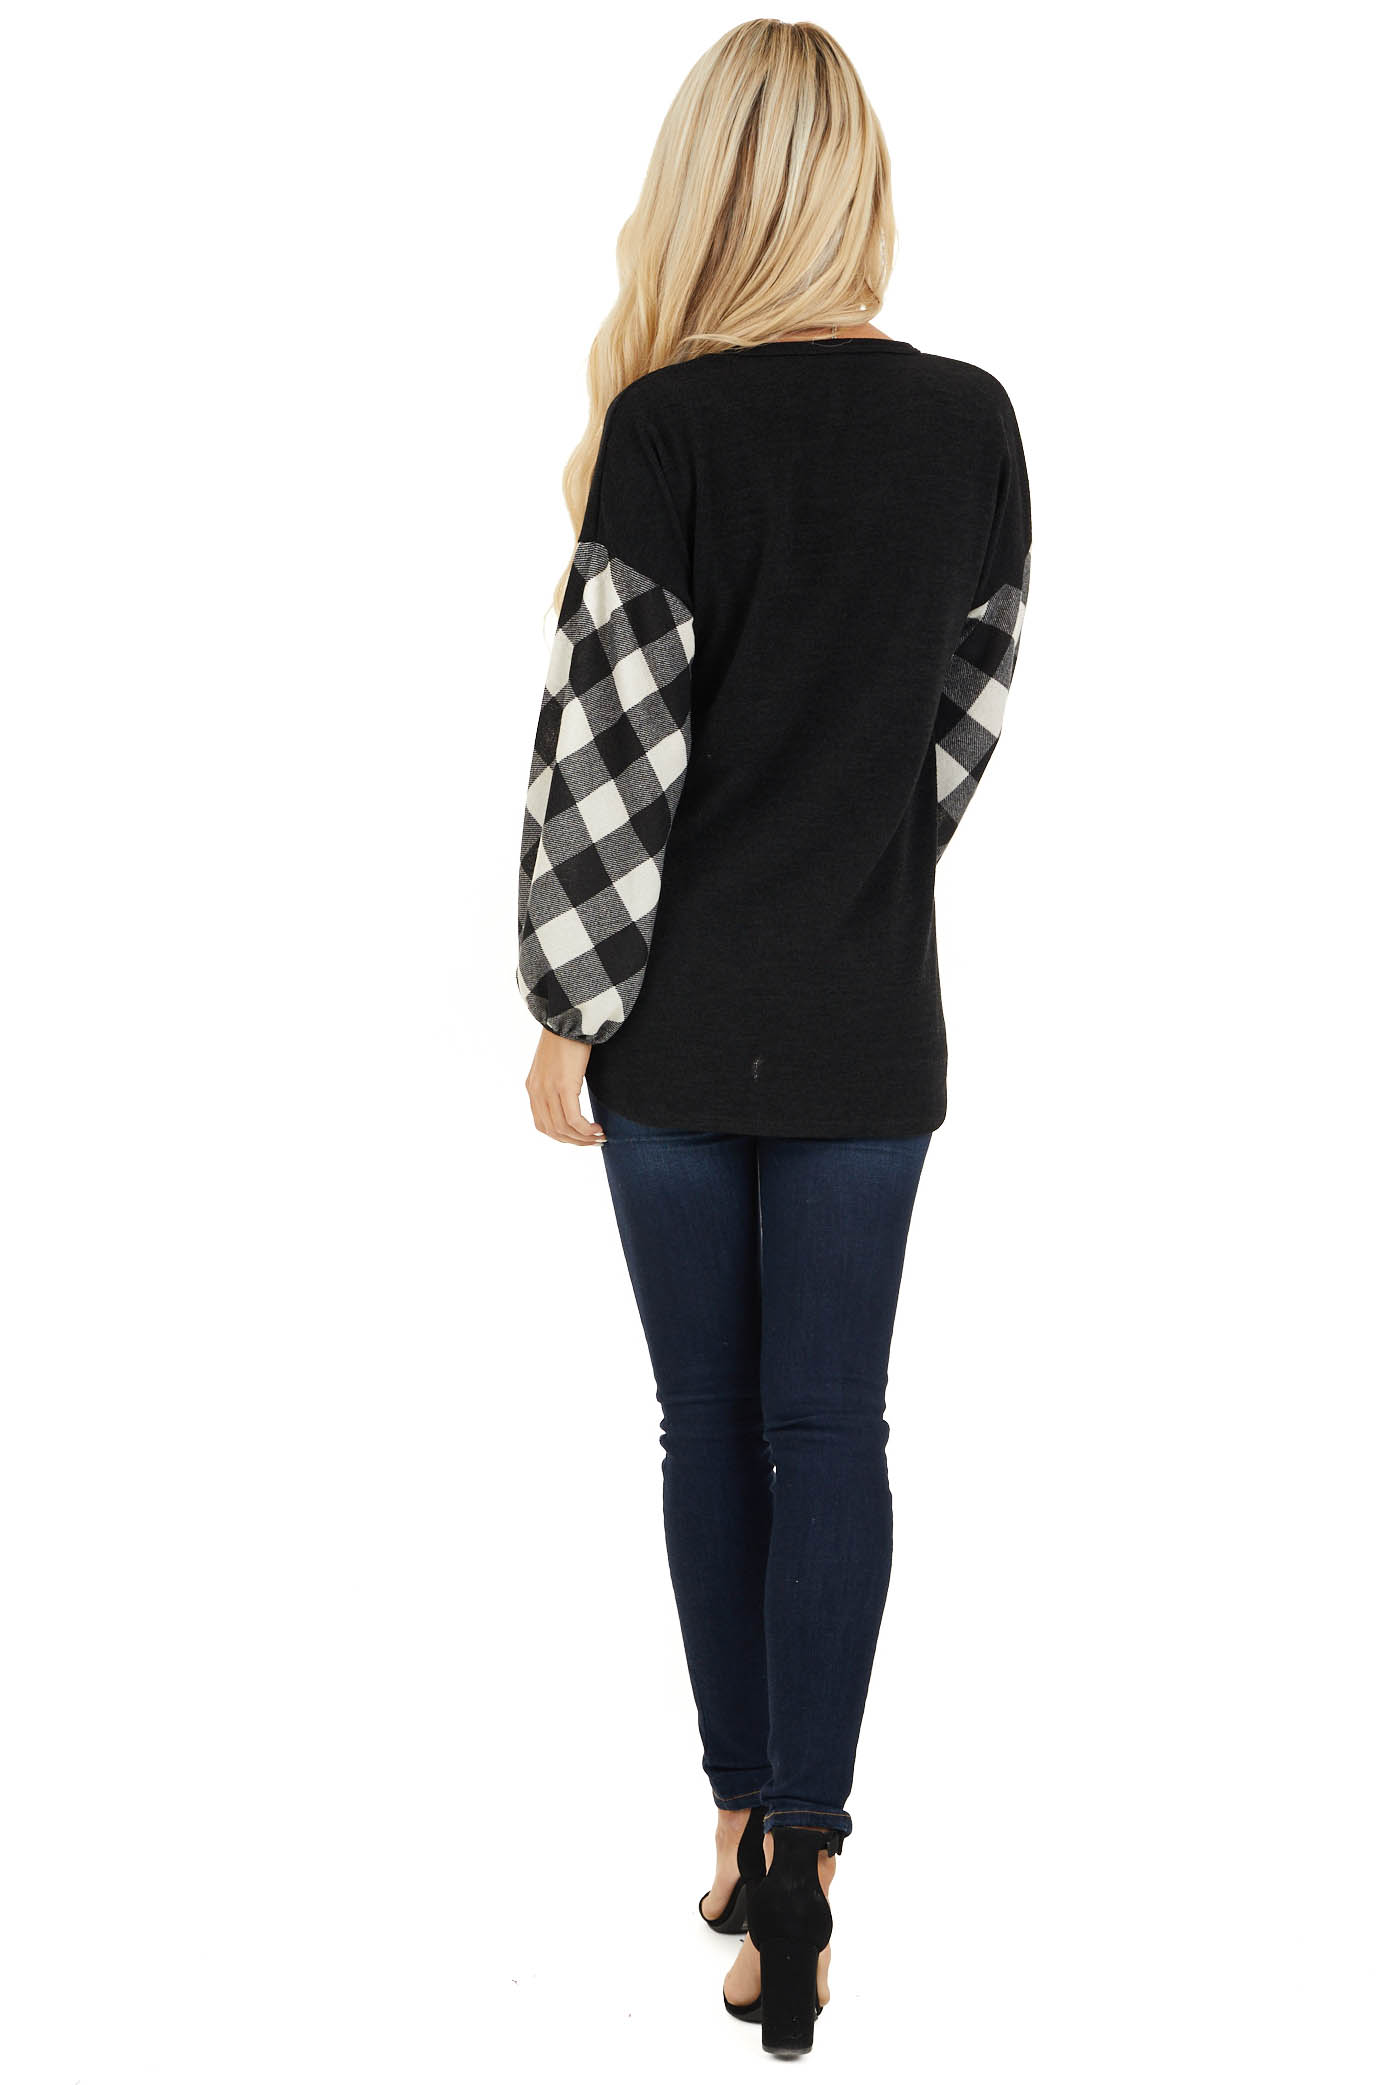 Black Top with Long Off White Buffalo Plaid Sleeves back full body